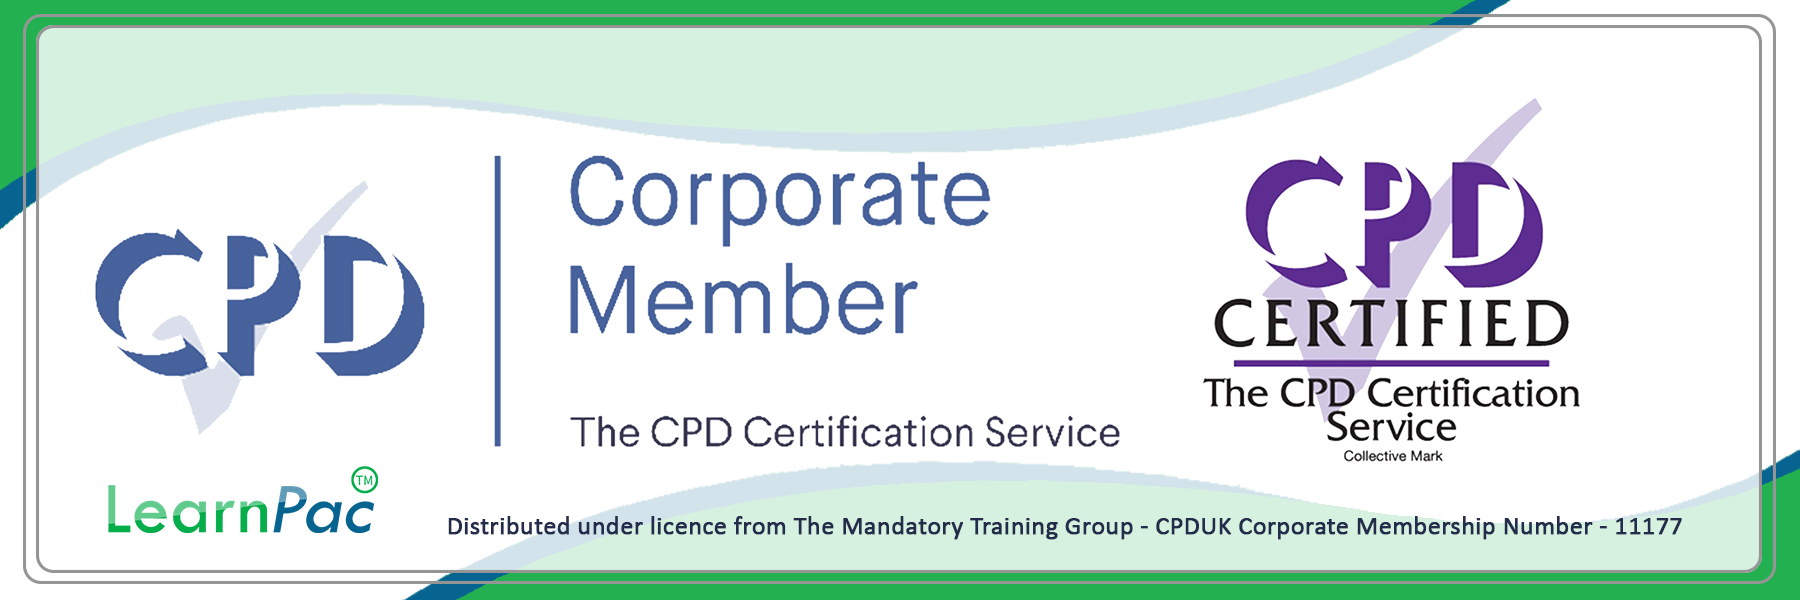 Care Home Train the Trainer - E-Learning Courses with Certificates - CPD Certified - LearnPac Systems UK -